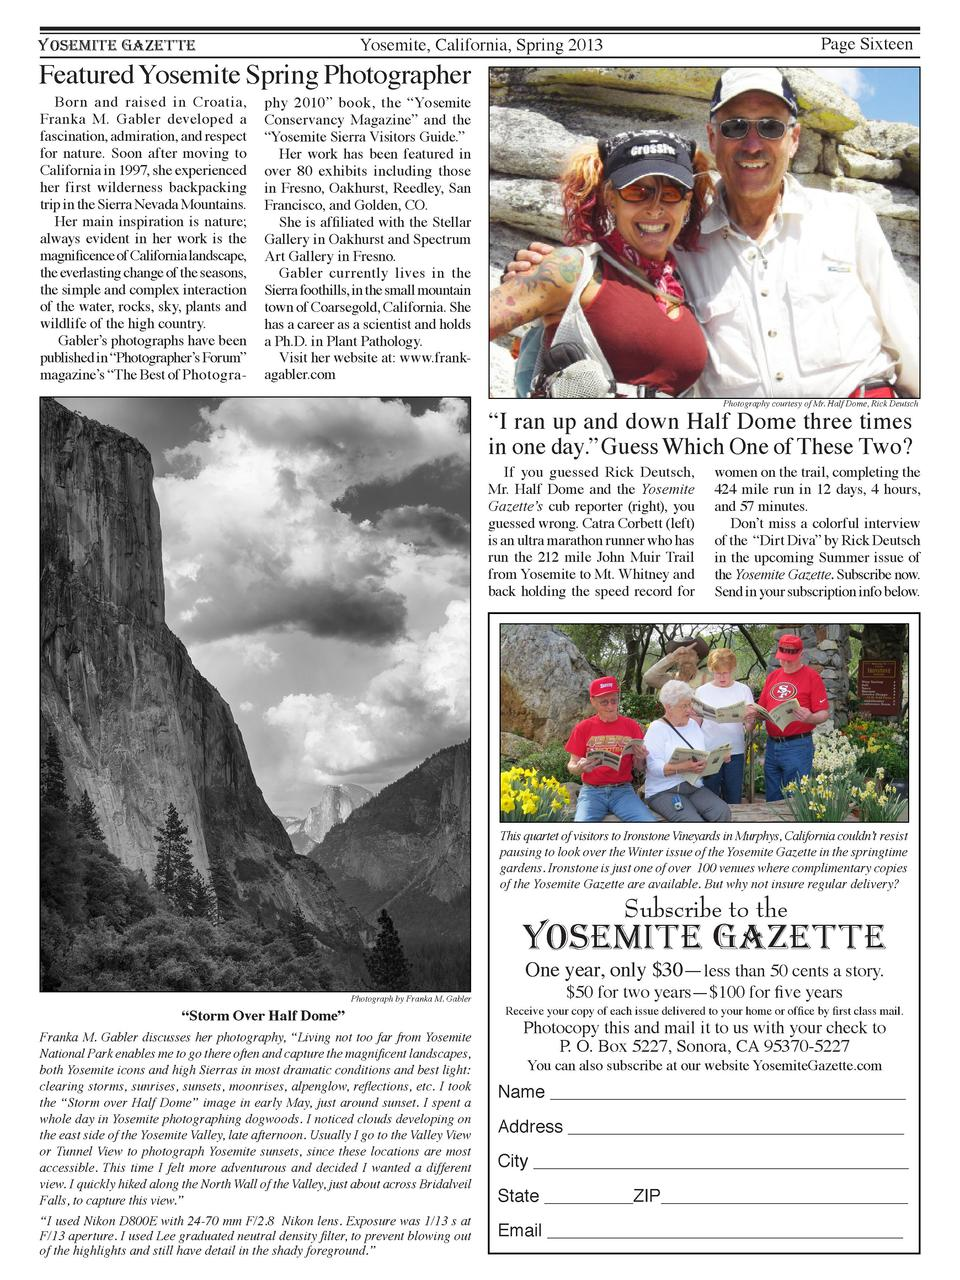 Page Sixteen  Yosemite, California, Spring 2013  YOSEMITE GAZETTE  Featured Yosemite Spring Photographer Born and raised i...